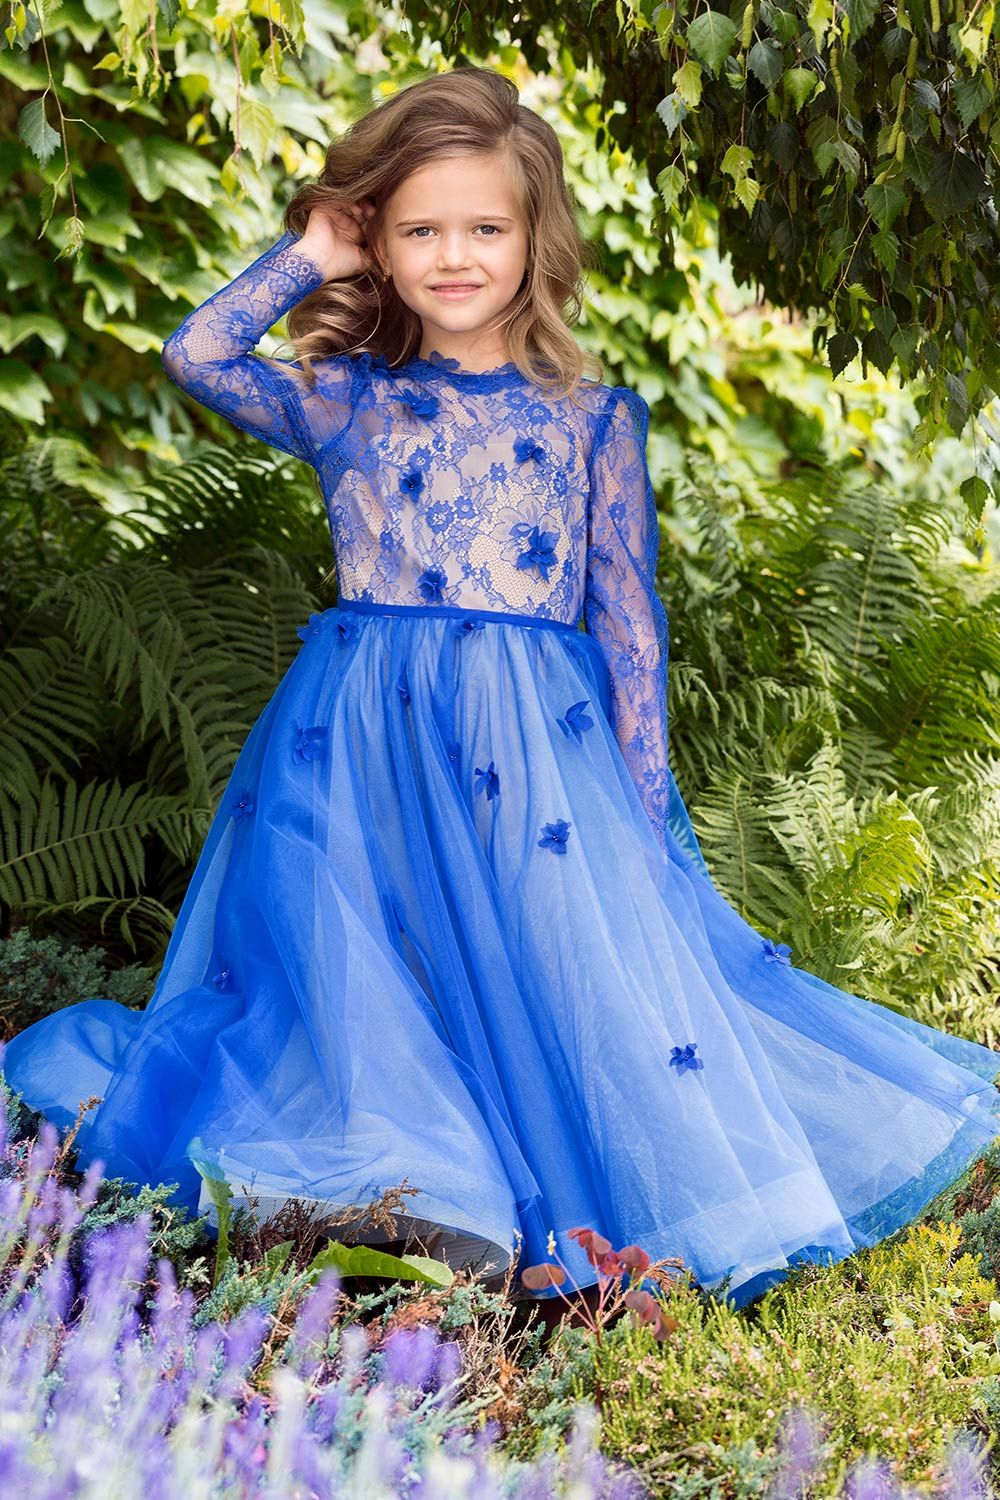 A bright royal blue flower girl dress with long sleeves